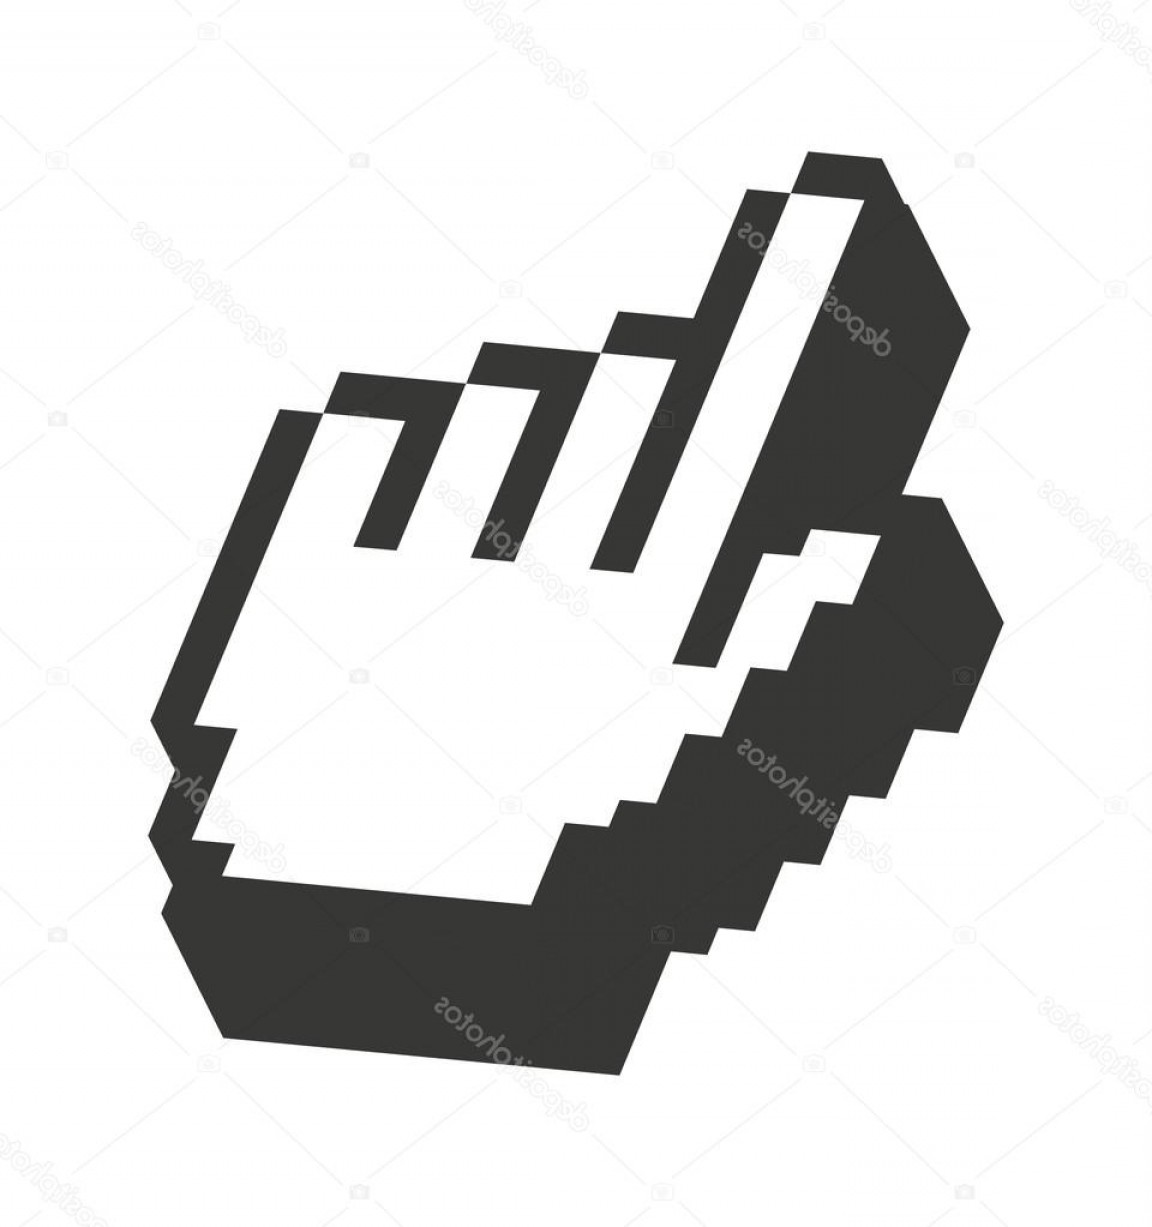 Computer Pointer Vector: Stock Illustration Computer Mouse Hand Pointer Isolated